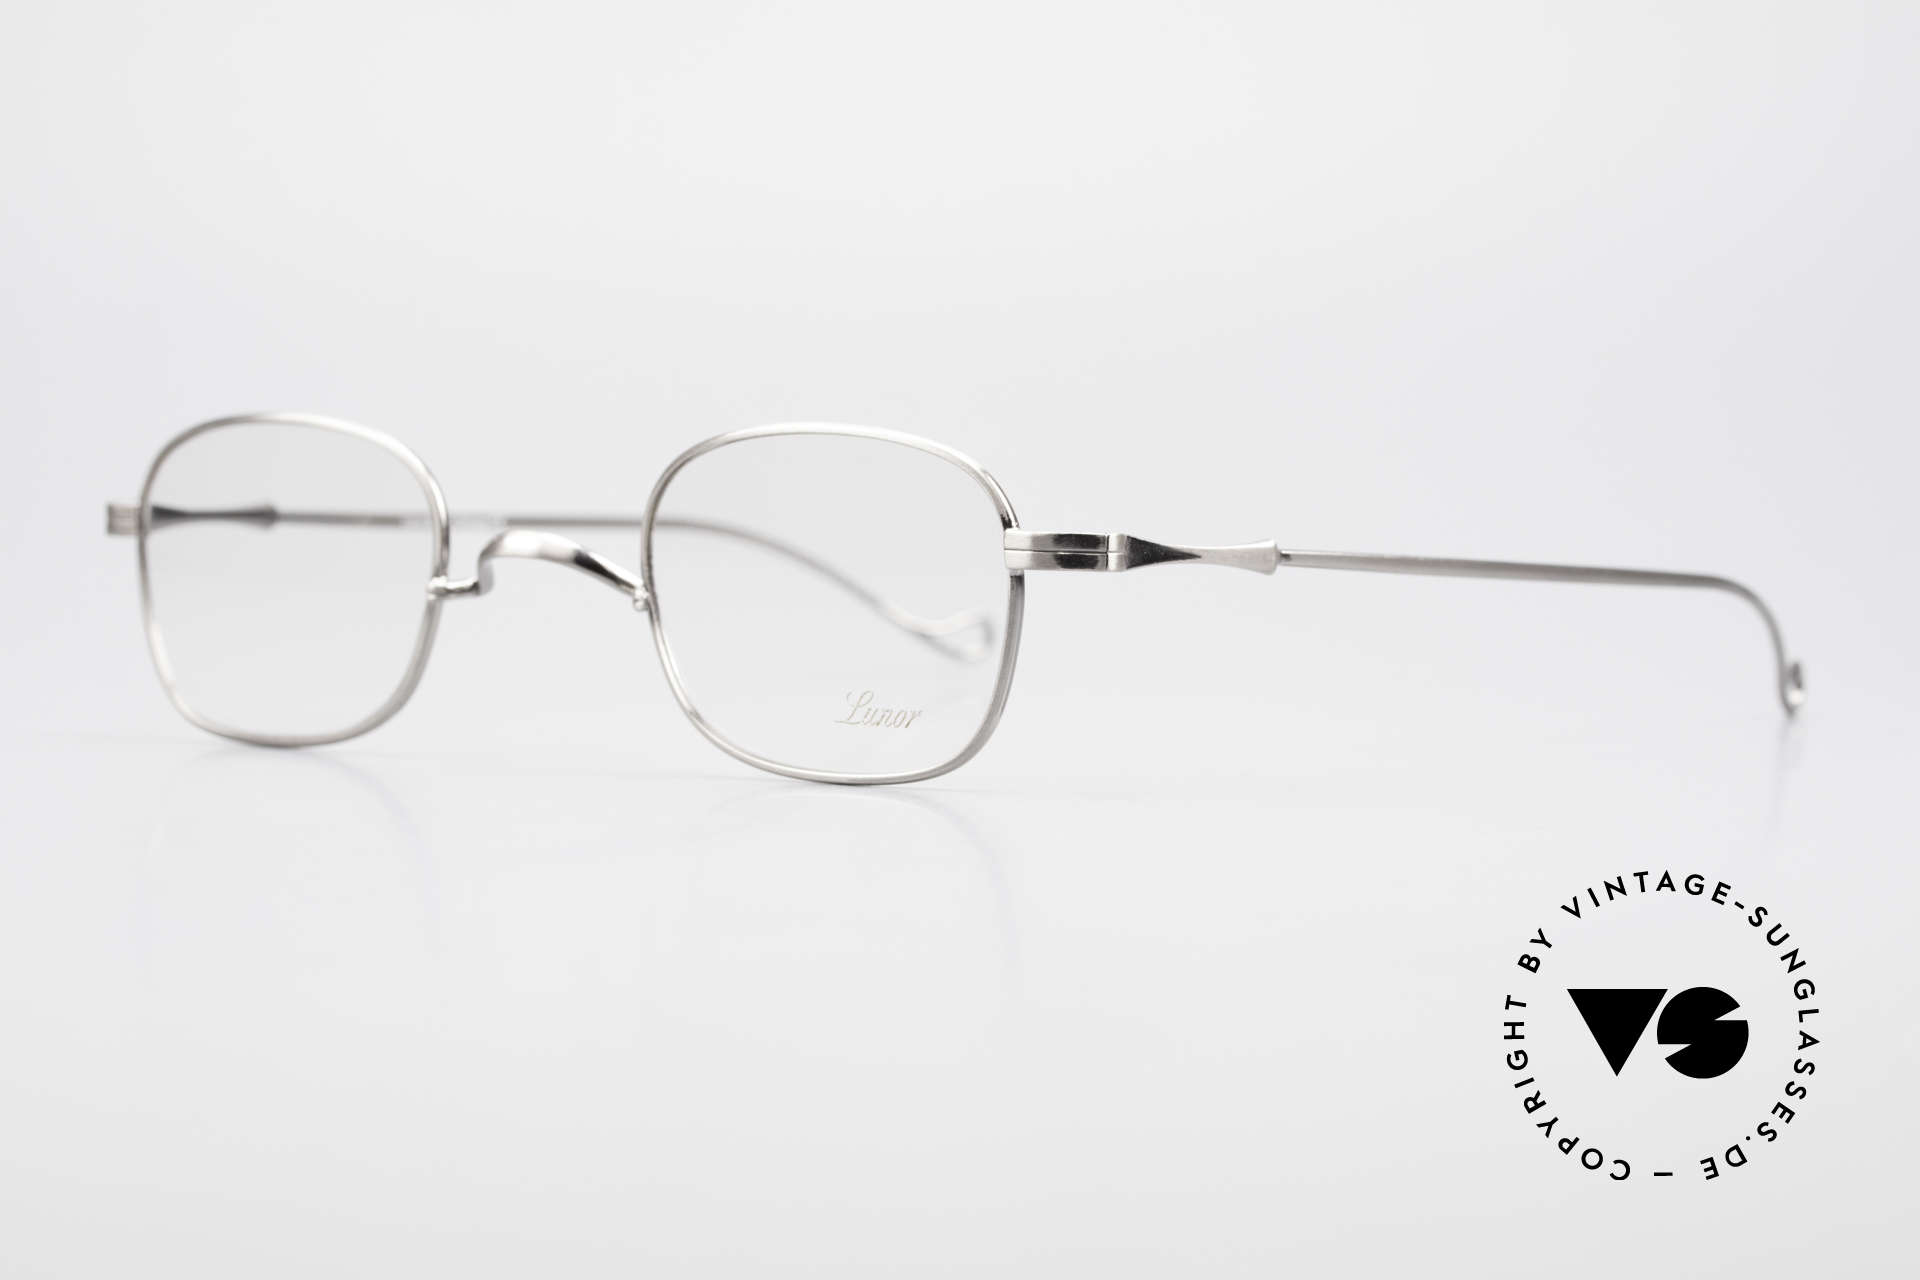 """Lunor II 05 Classic Timeless Eyeglasses, well-known for the """"W-bridge"""" & the plain frame designs, Made for Men and Women"""